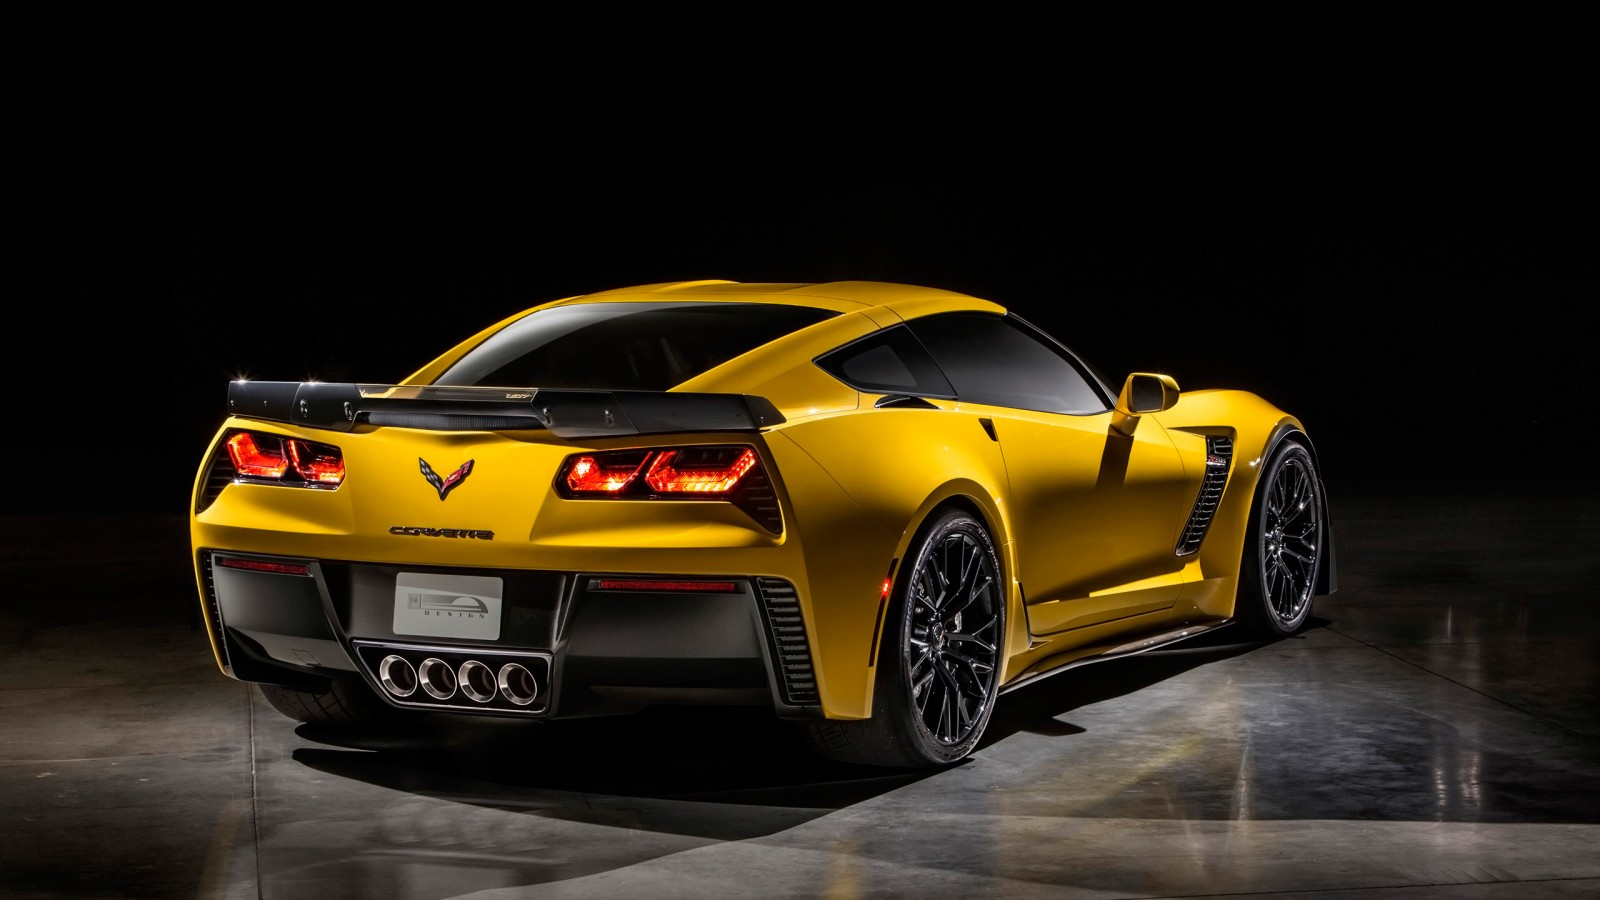 2015 Chevrolet Corvette Z06 2 Wallpaper | HD Car Wallpapers